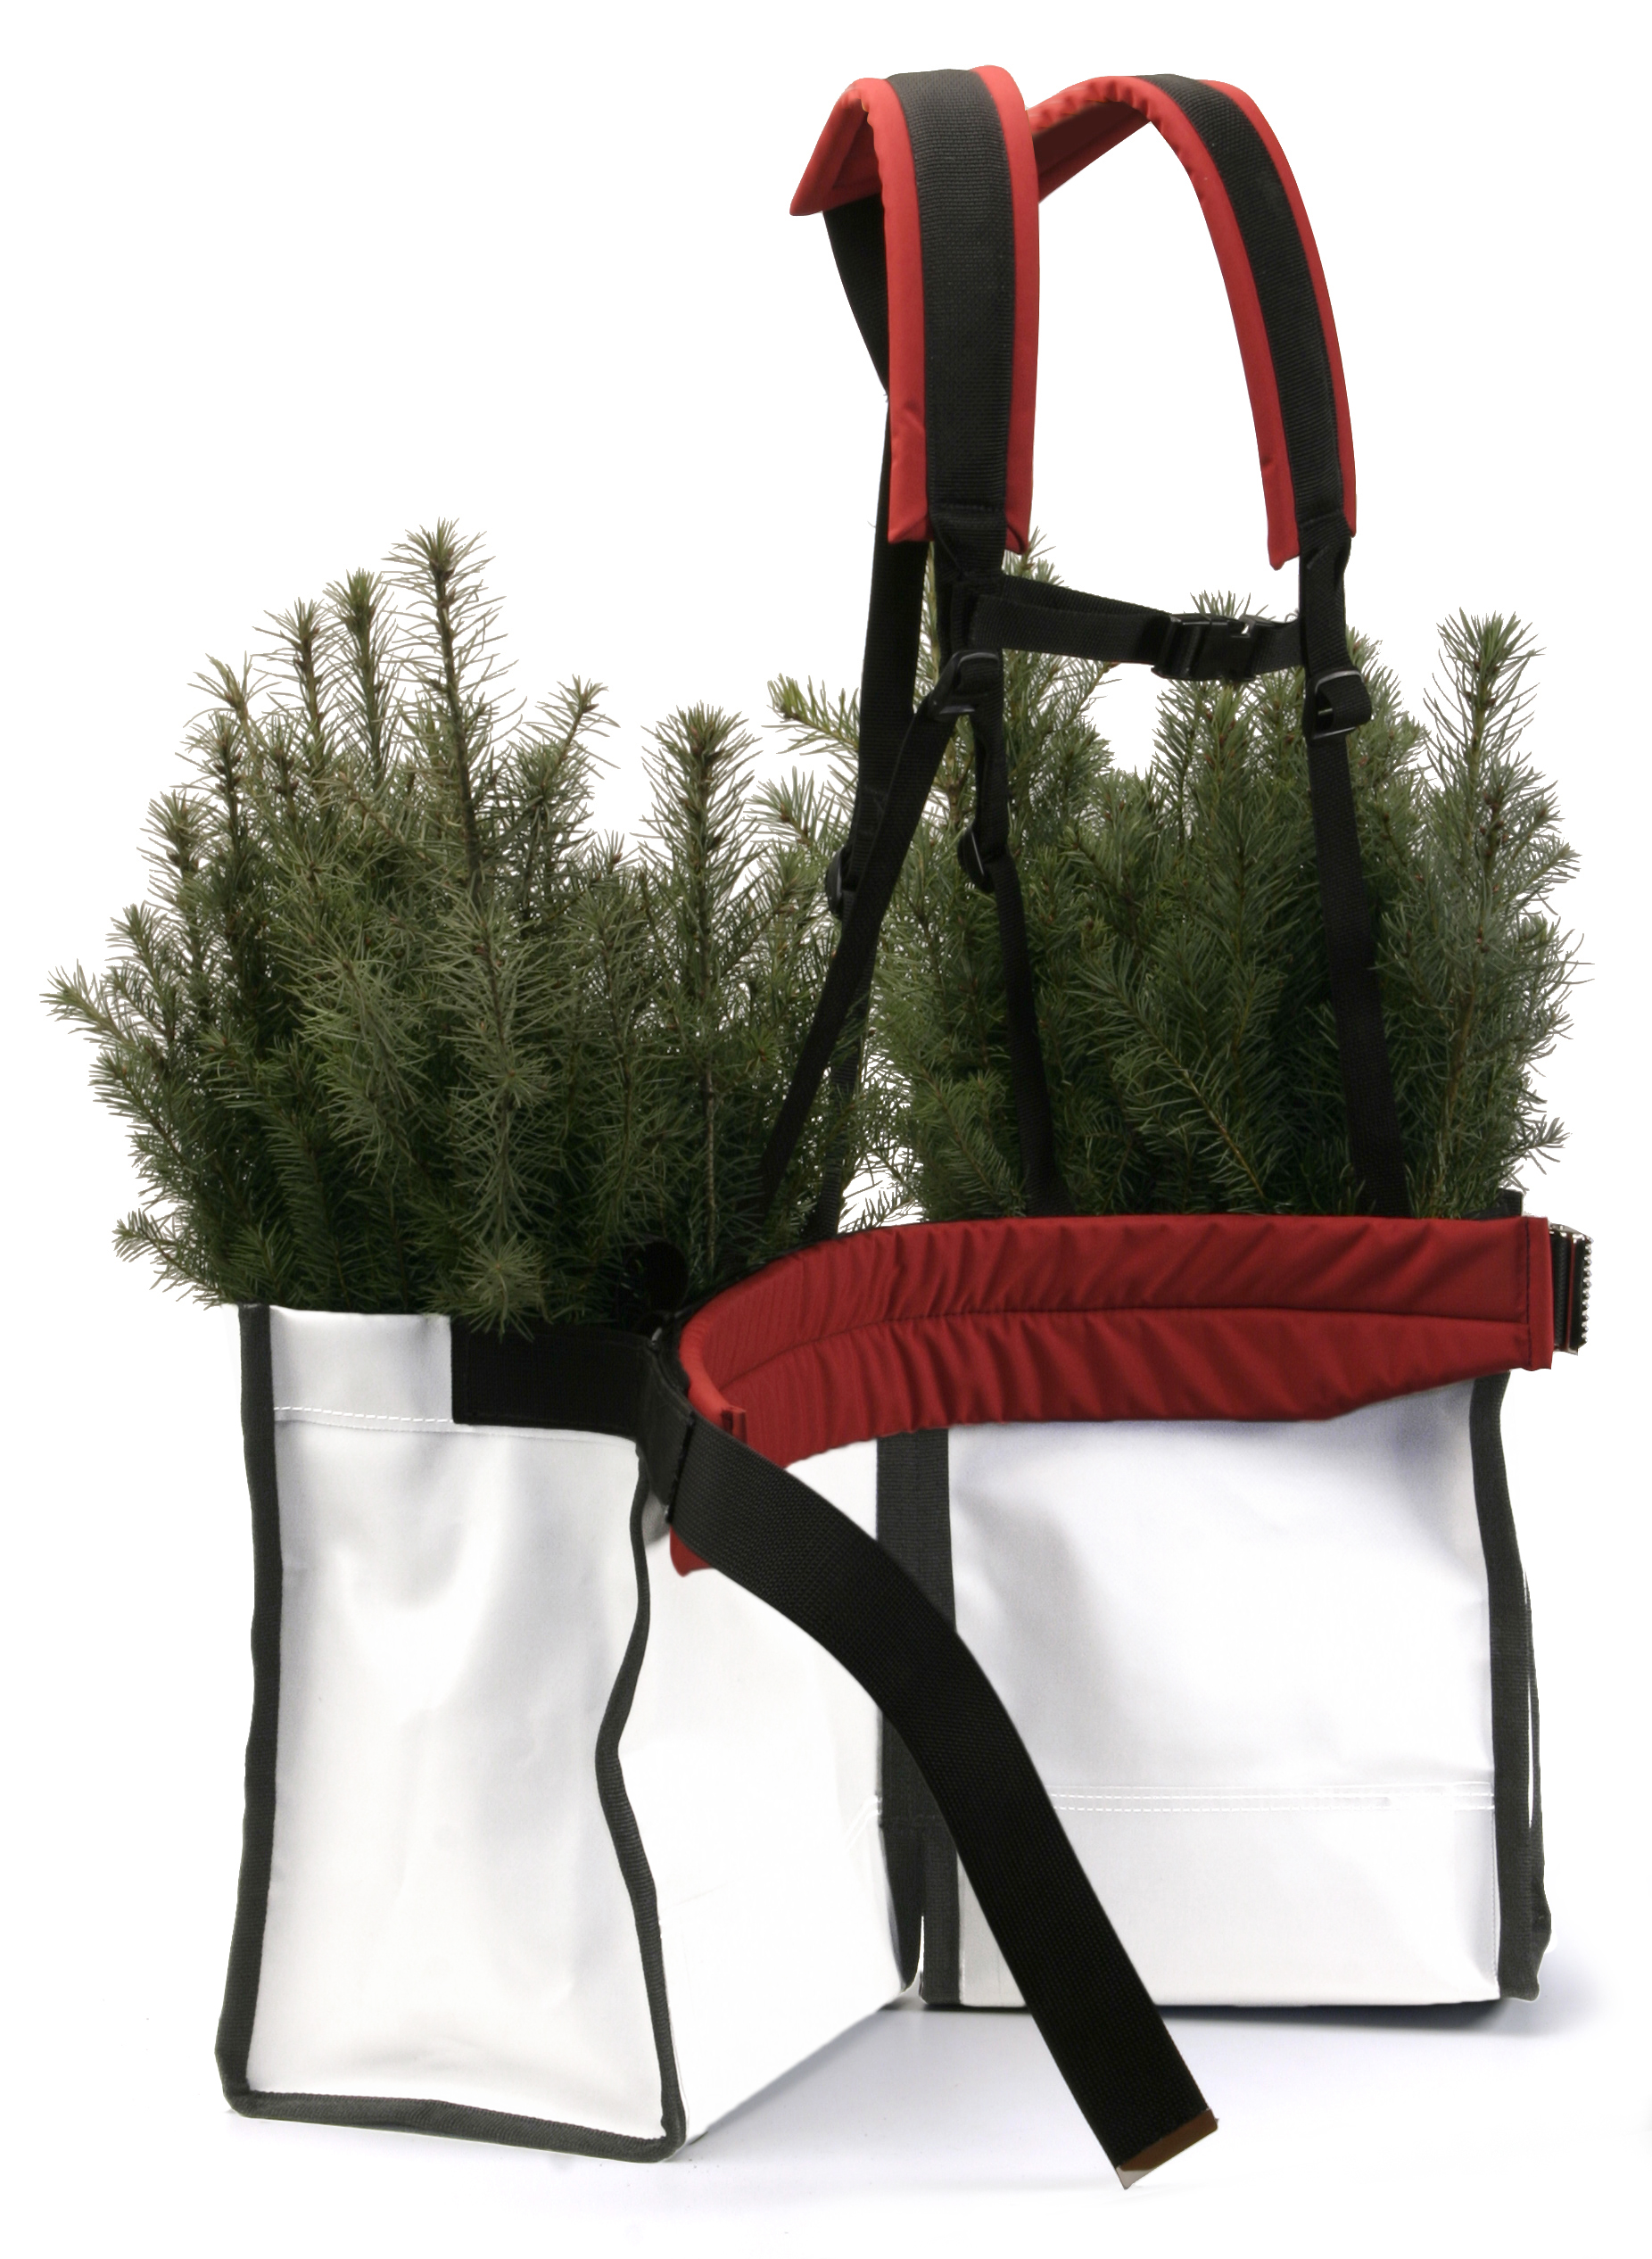 For Tpb Pro Pacforest 15 Deep Tree Planting Bag